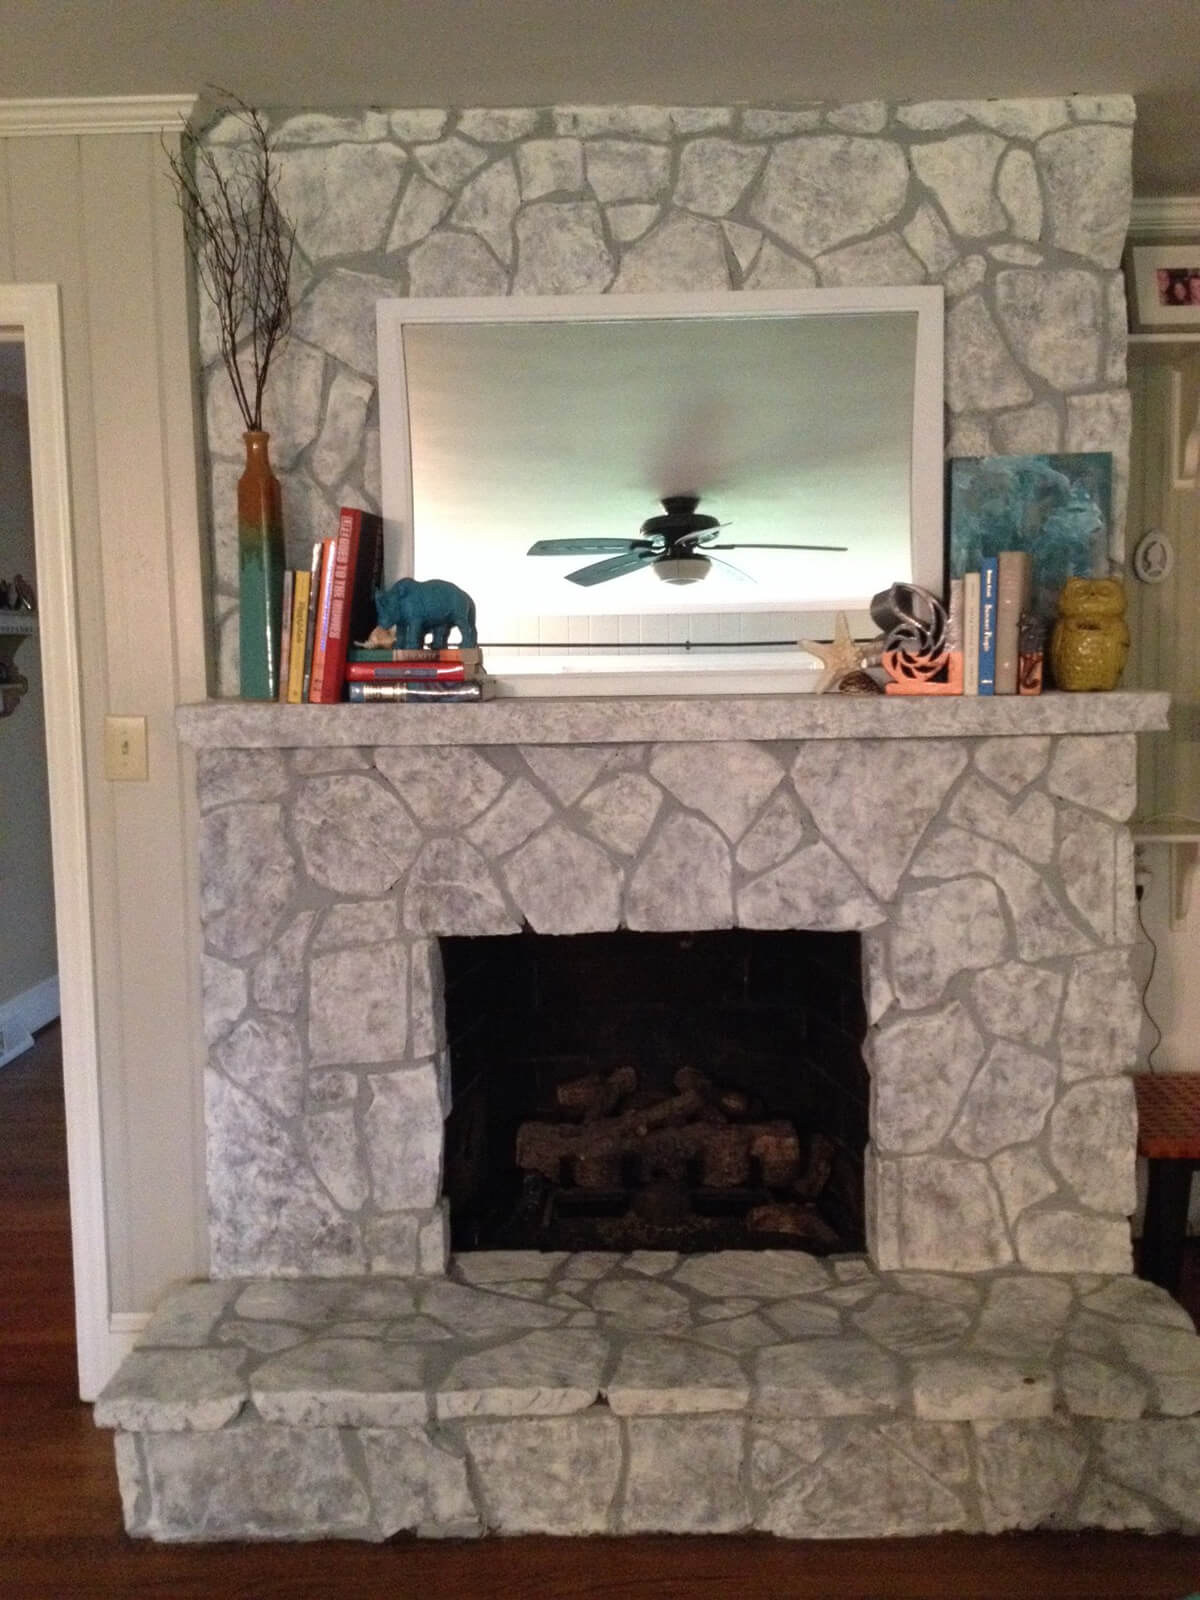 How To Paint Stone Fireplace by www.humbleandbold.com ...